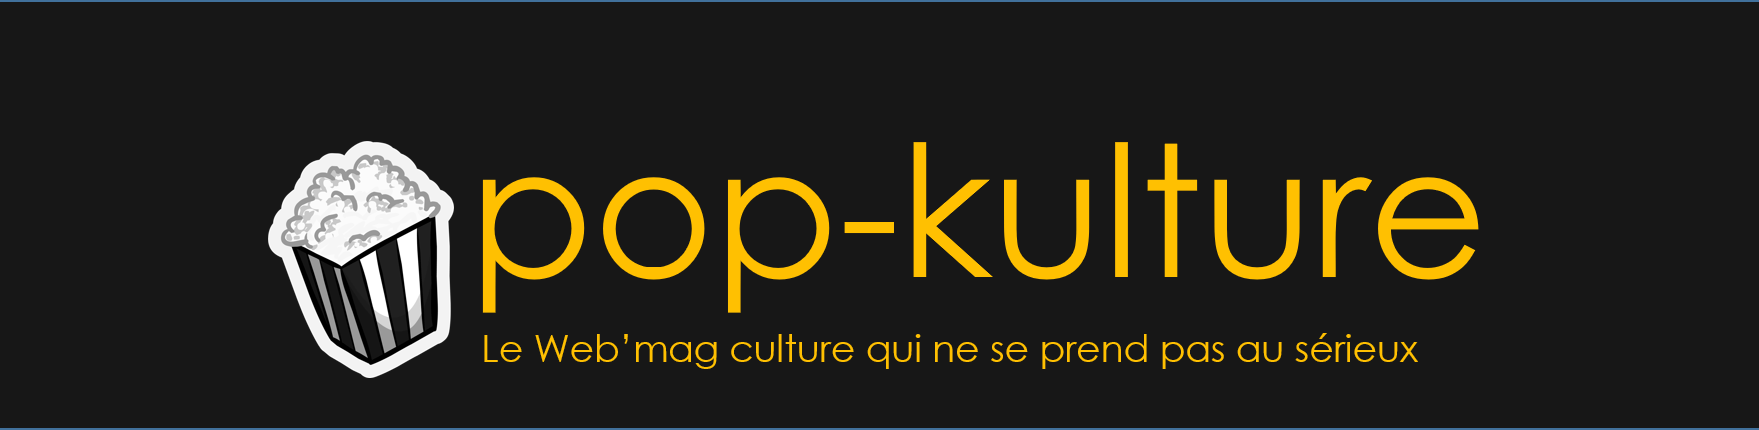 cropped-pop-kulture-logo-3.png